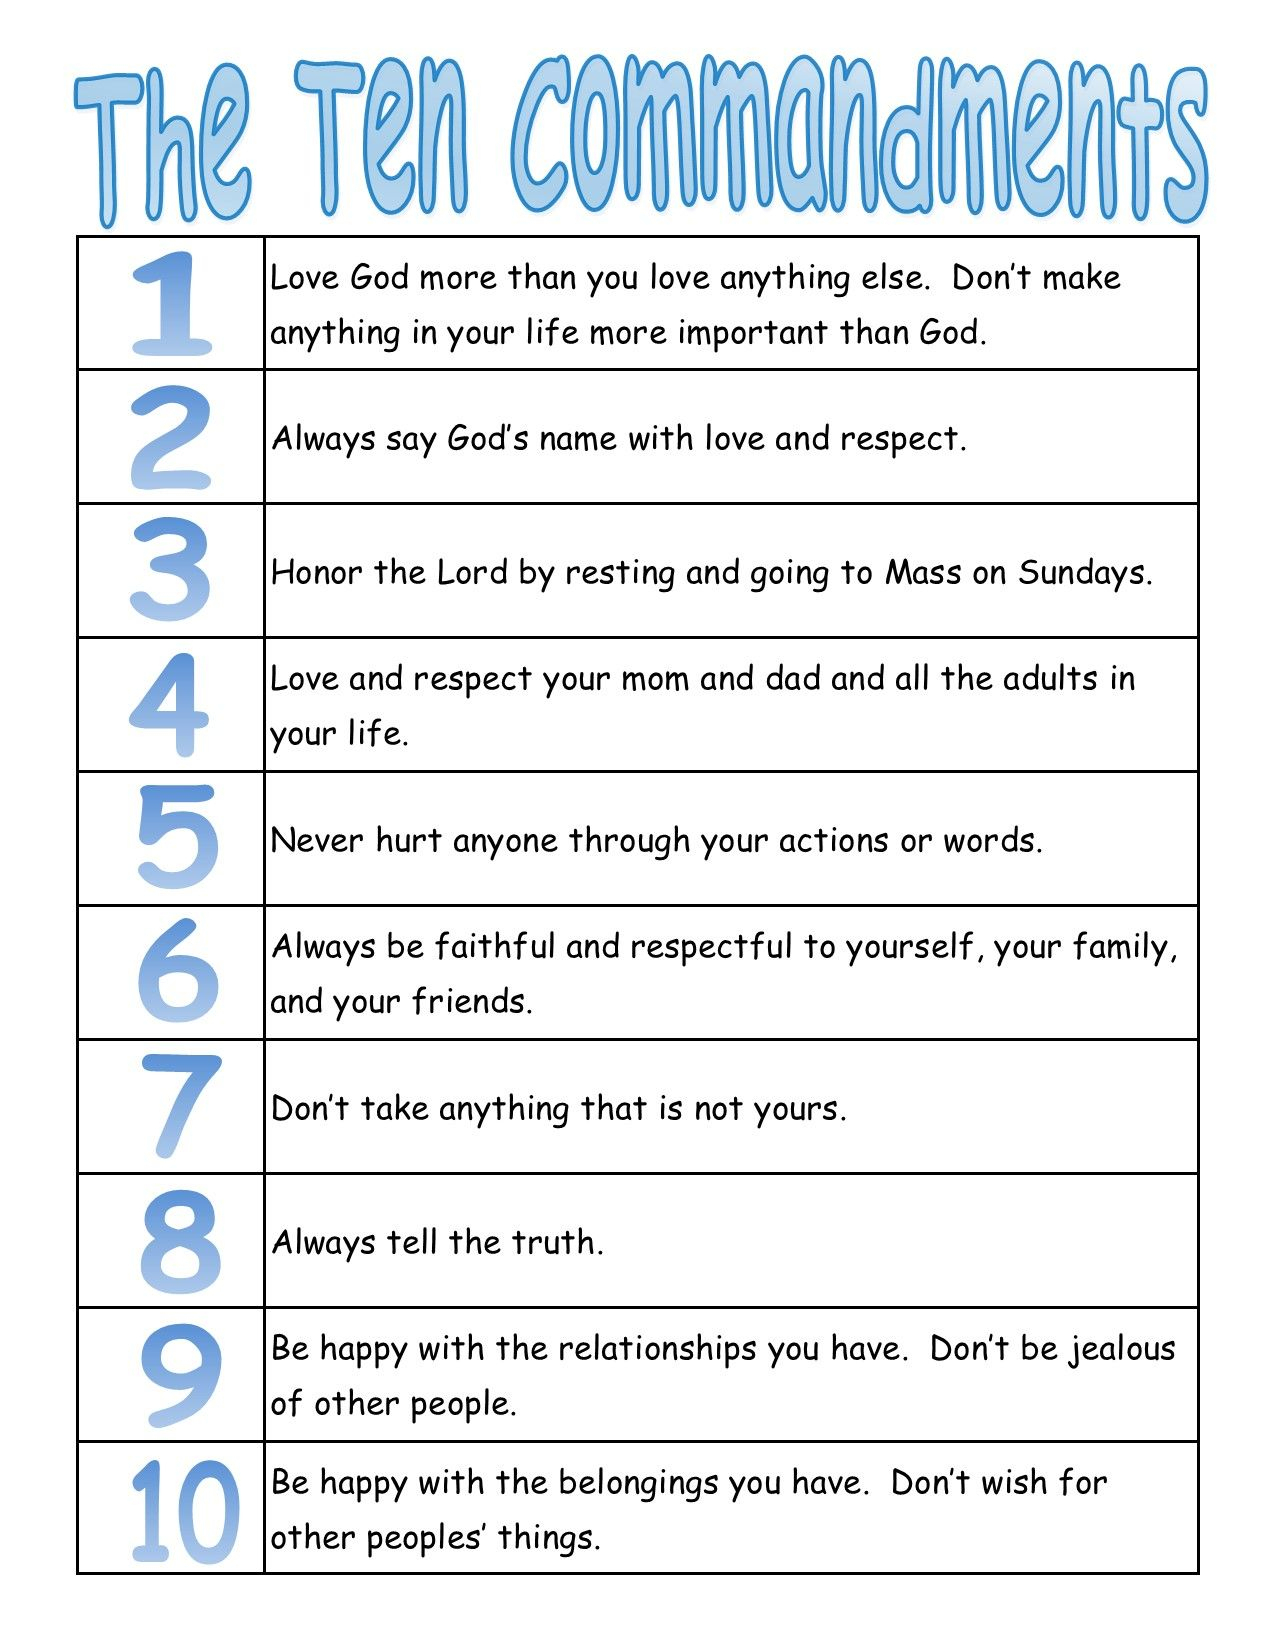 A True Catholic Version Of The Ten Commandments, For Kids | The Bible - Free Catholic Ten Commandments Printable